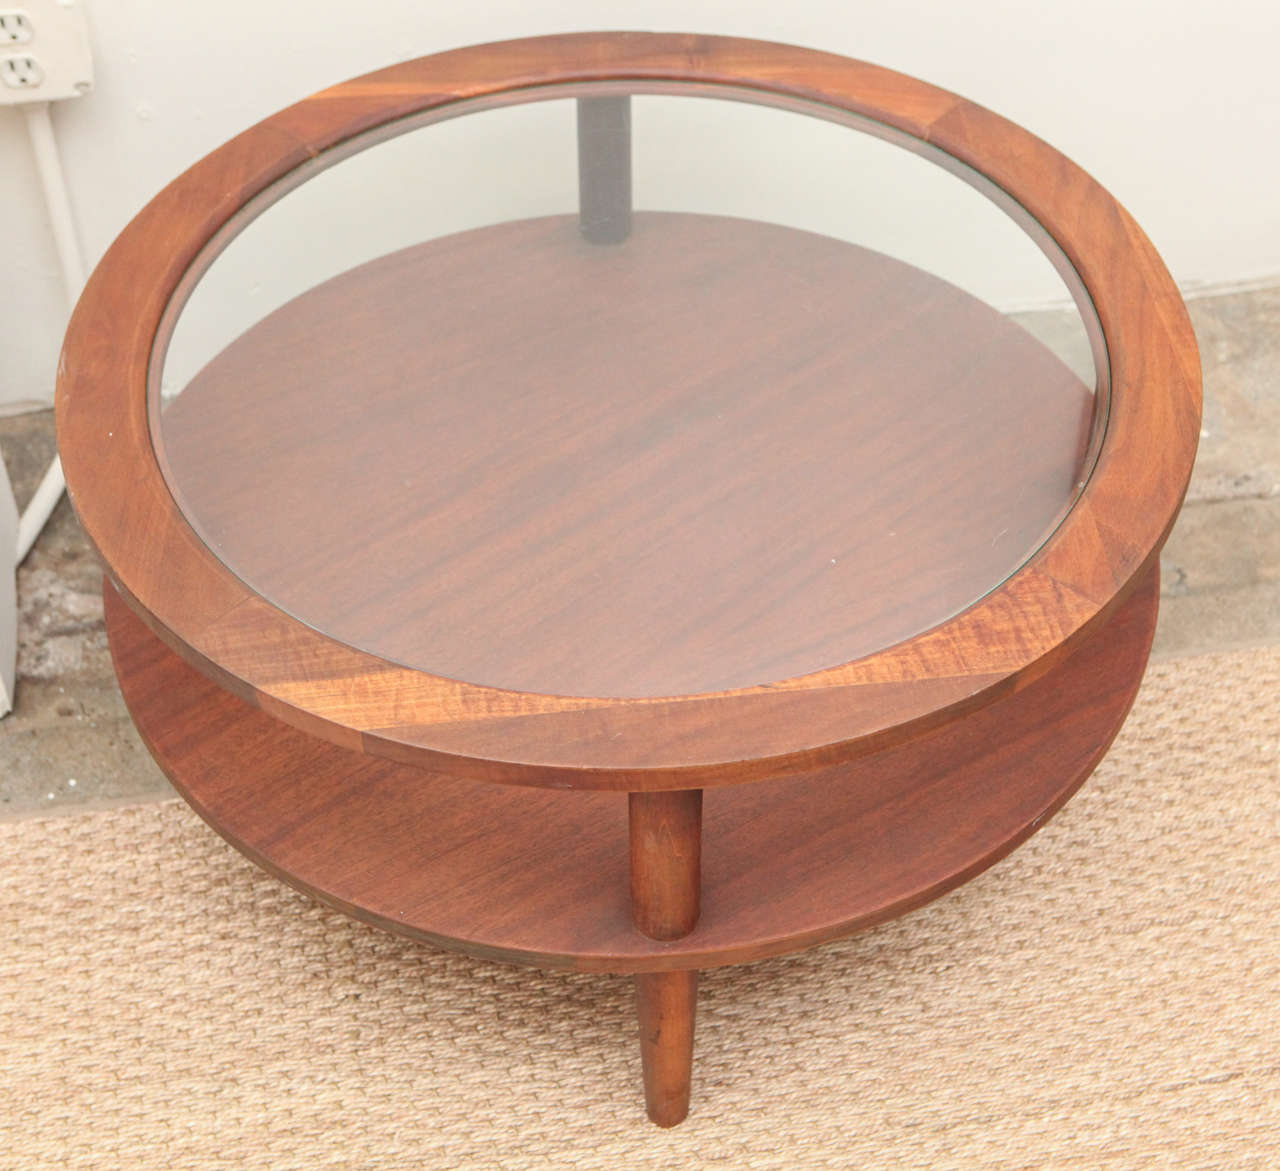 Vintage Round Glass-Topped Coffee Table At 1stdibs